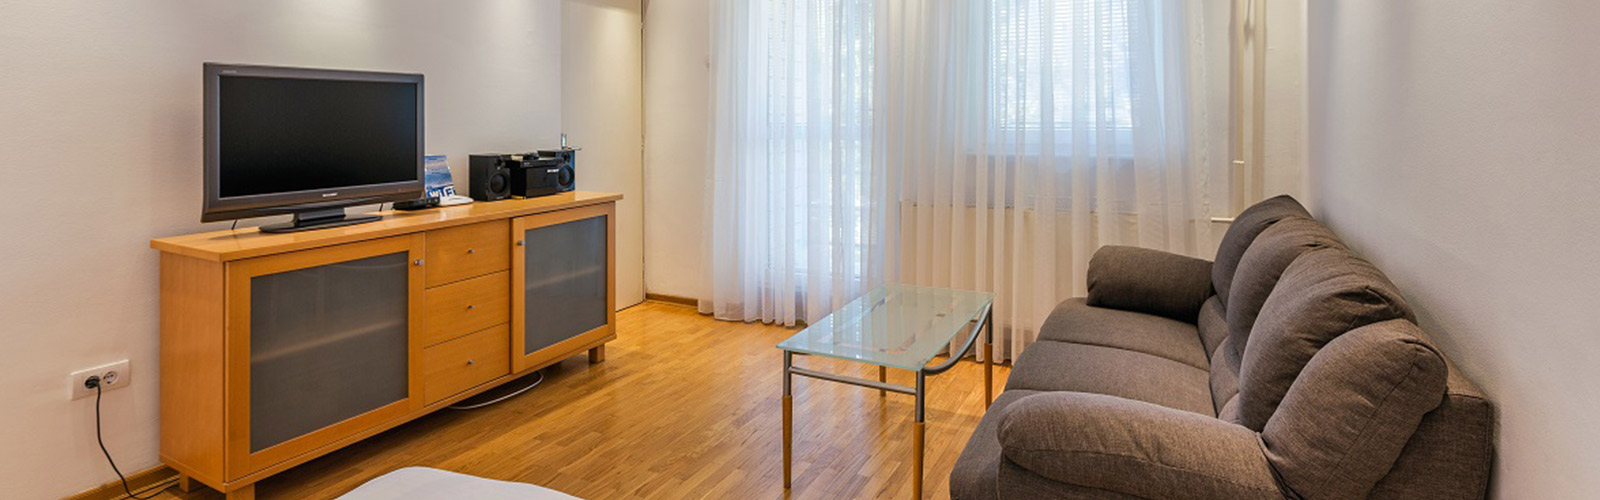 Concierge Belgrade | Apartman Delta Top 14